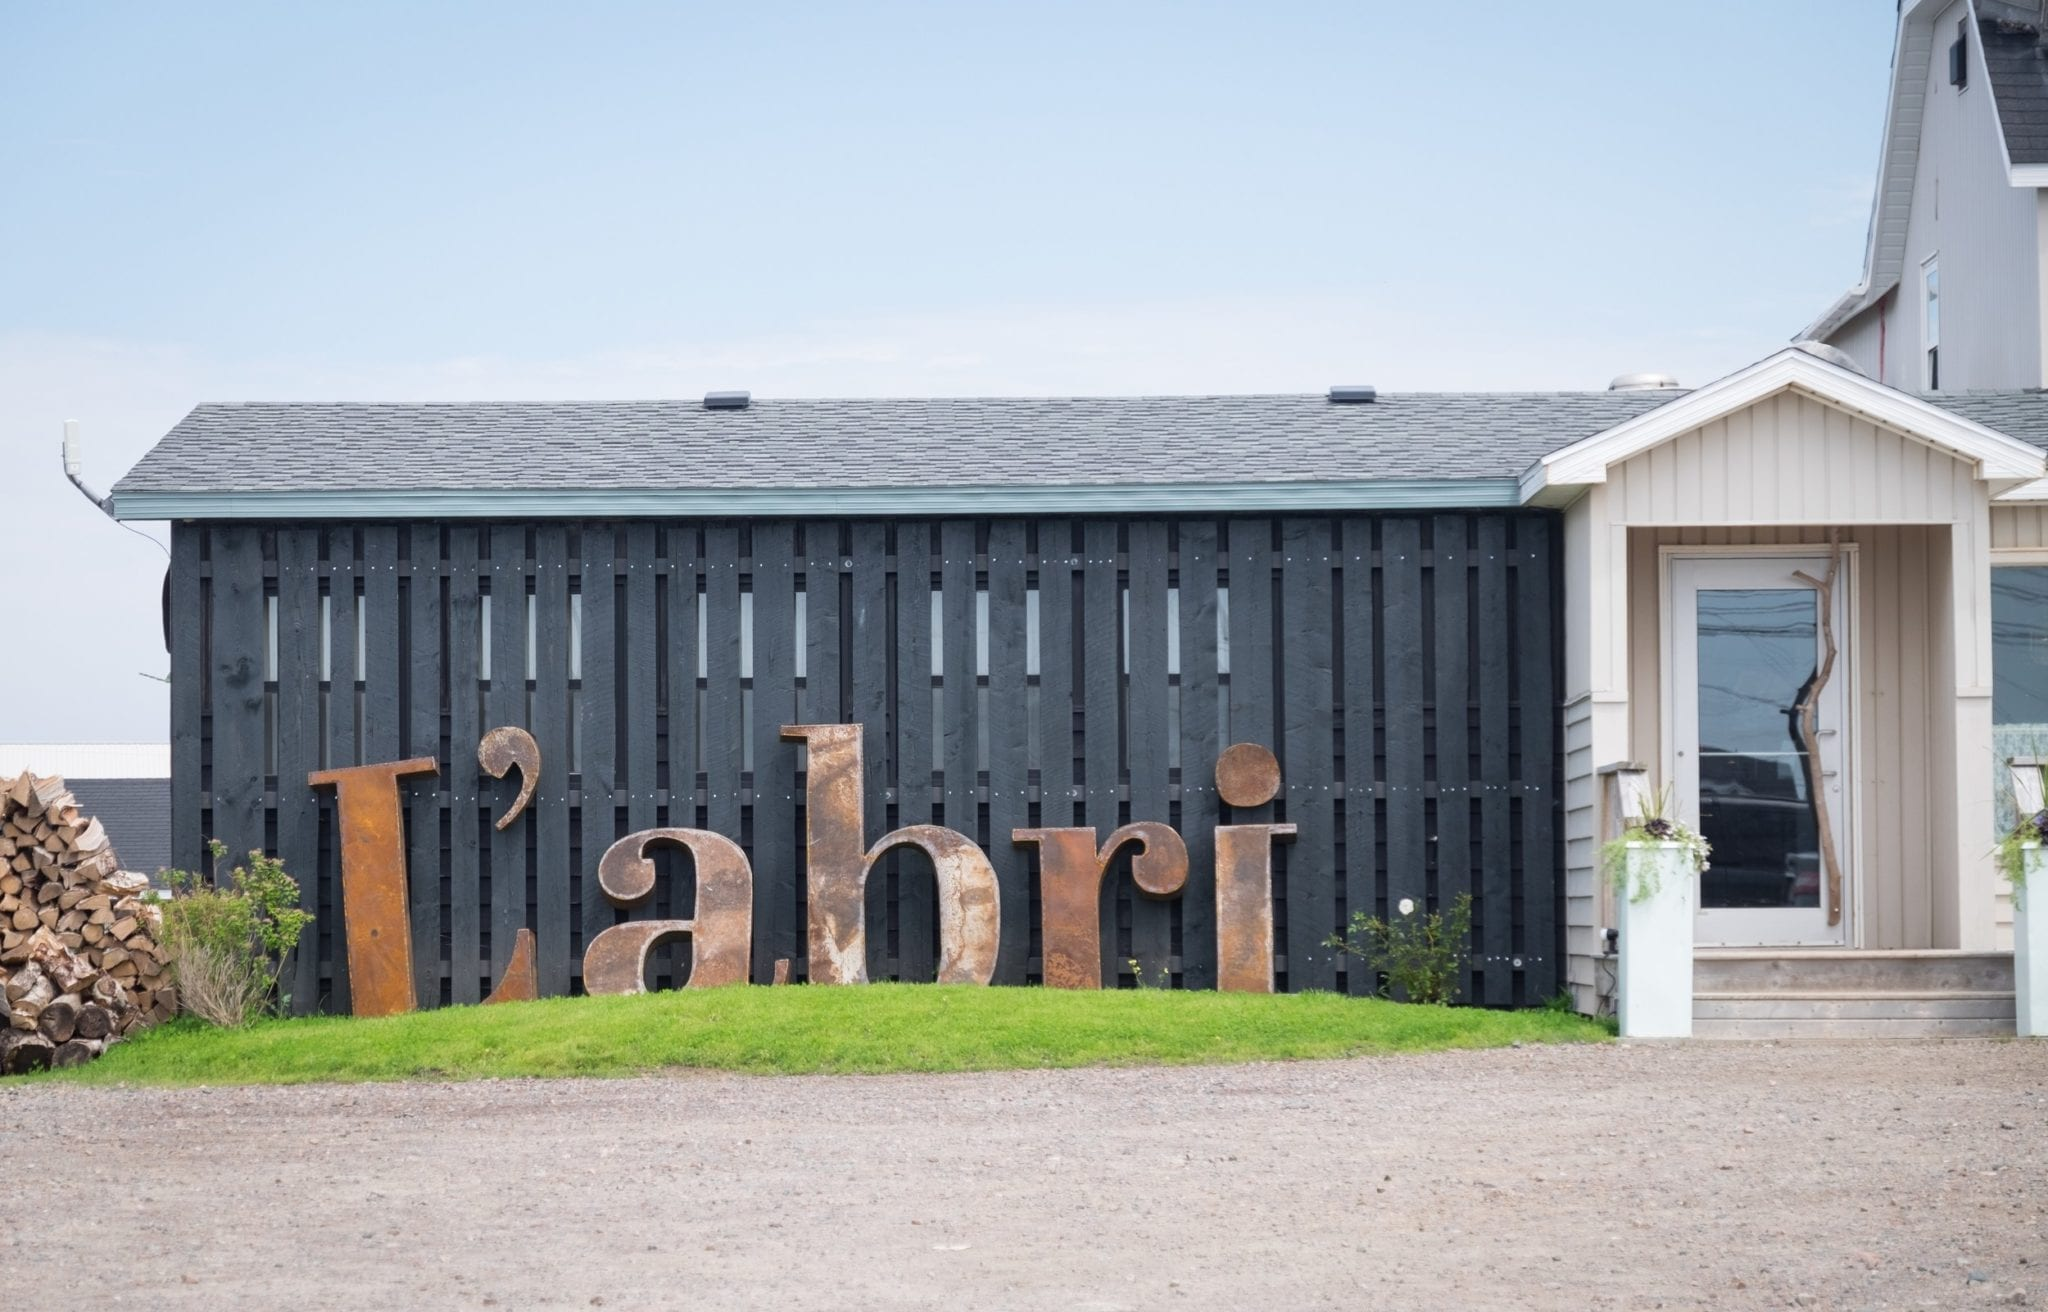 Giant letters reading L'abri in front of a one-story restaurant